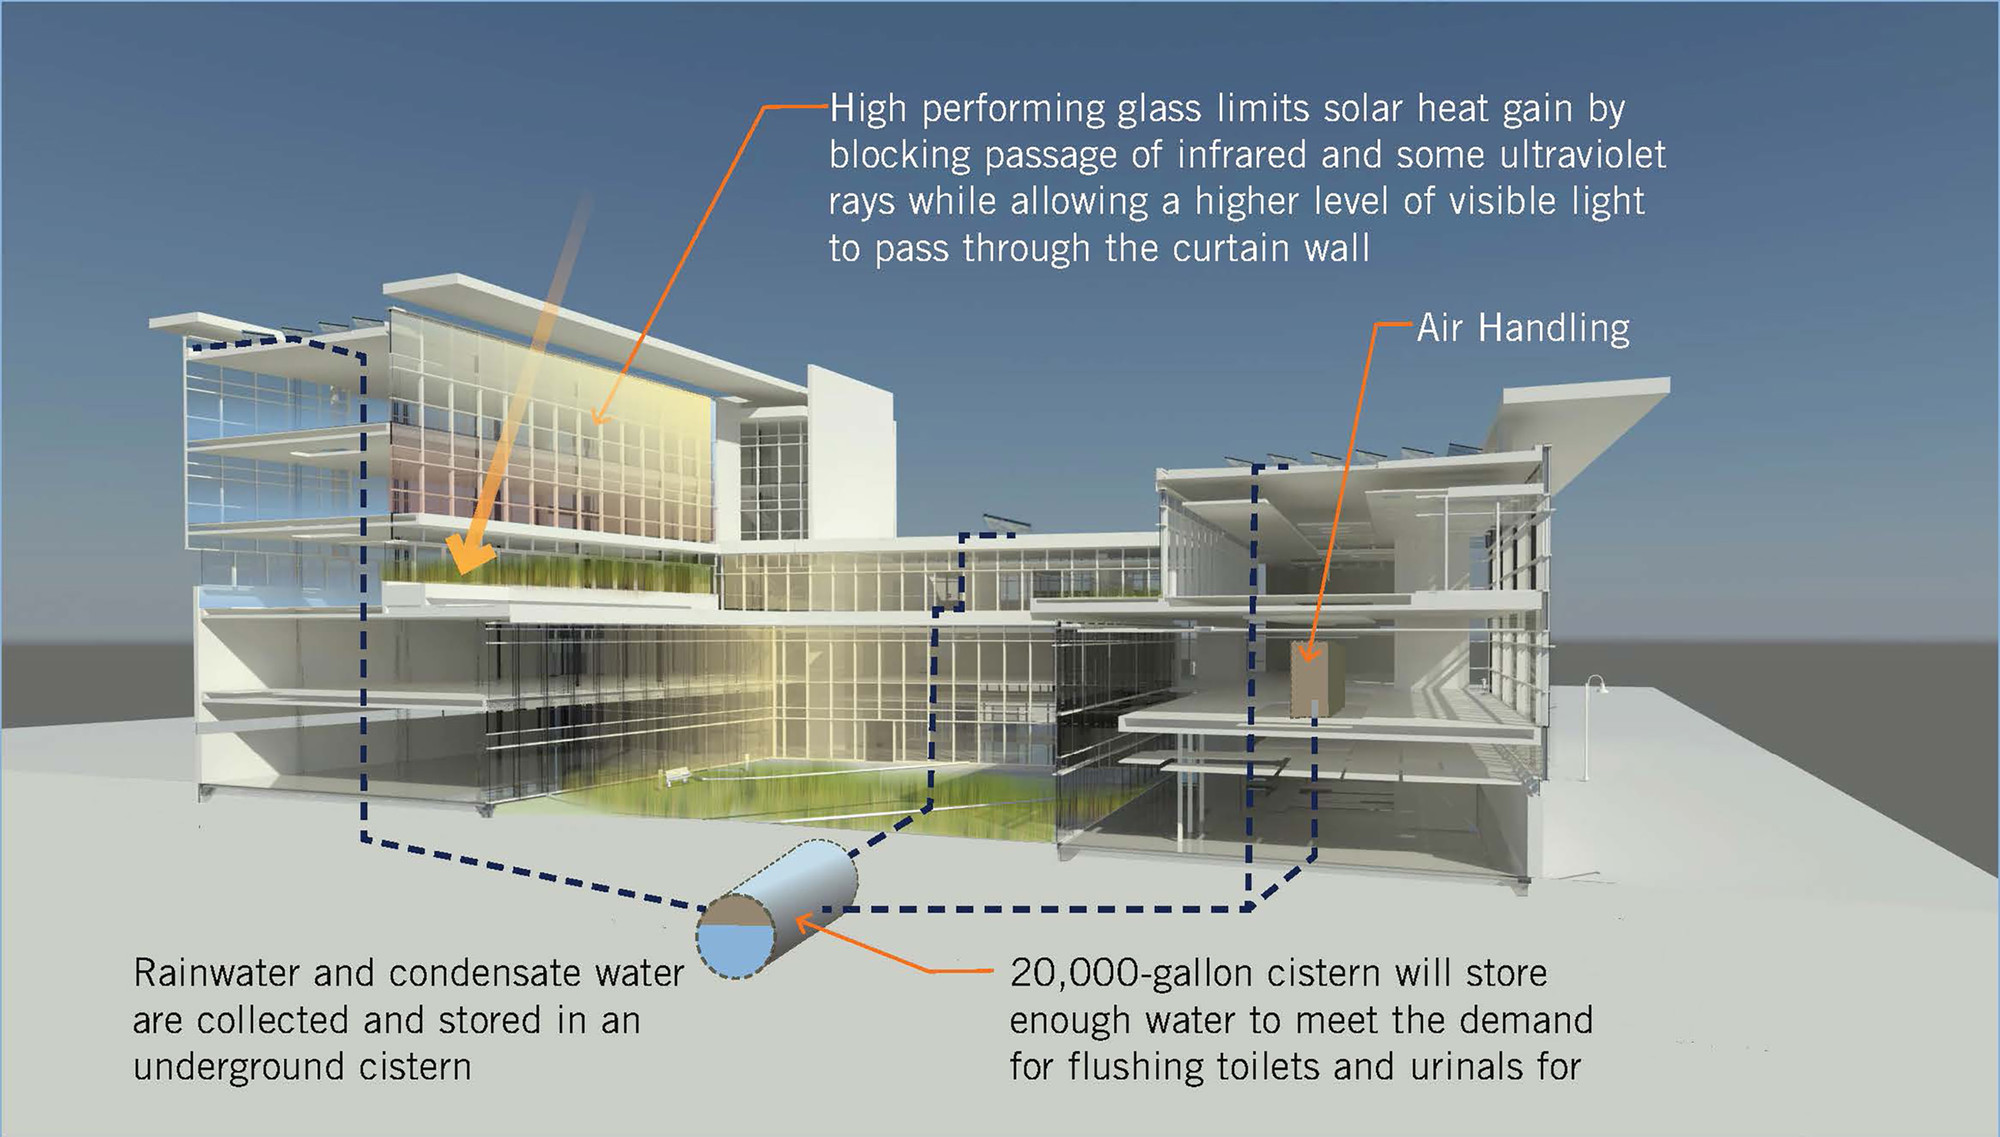 Water Retaining Structures Section : Gallery of university florida clinical translational